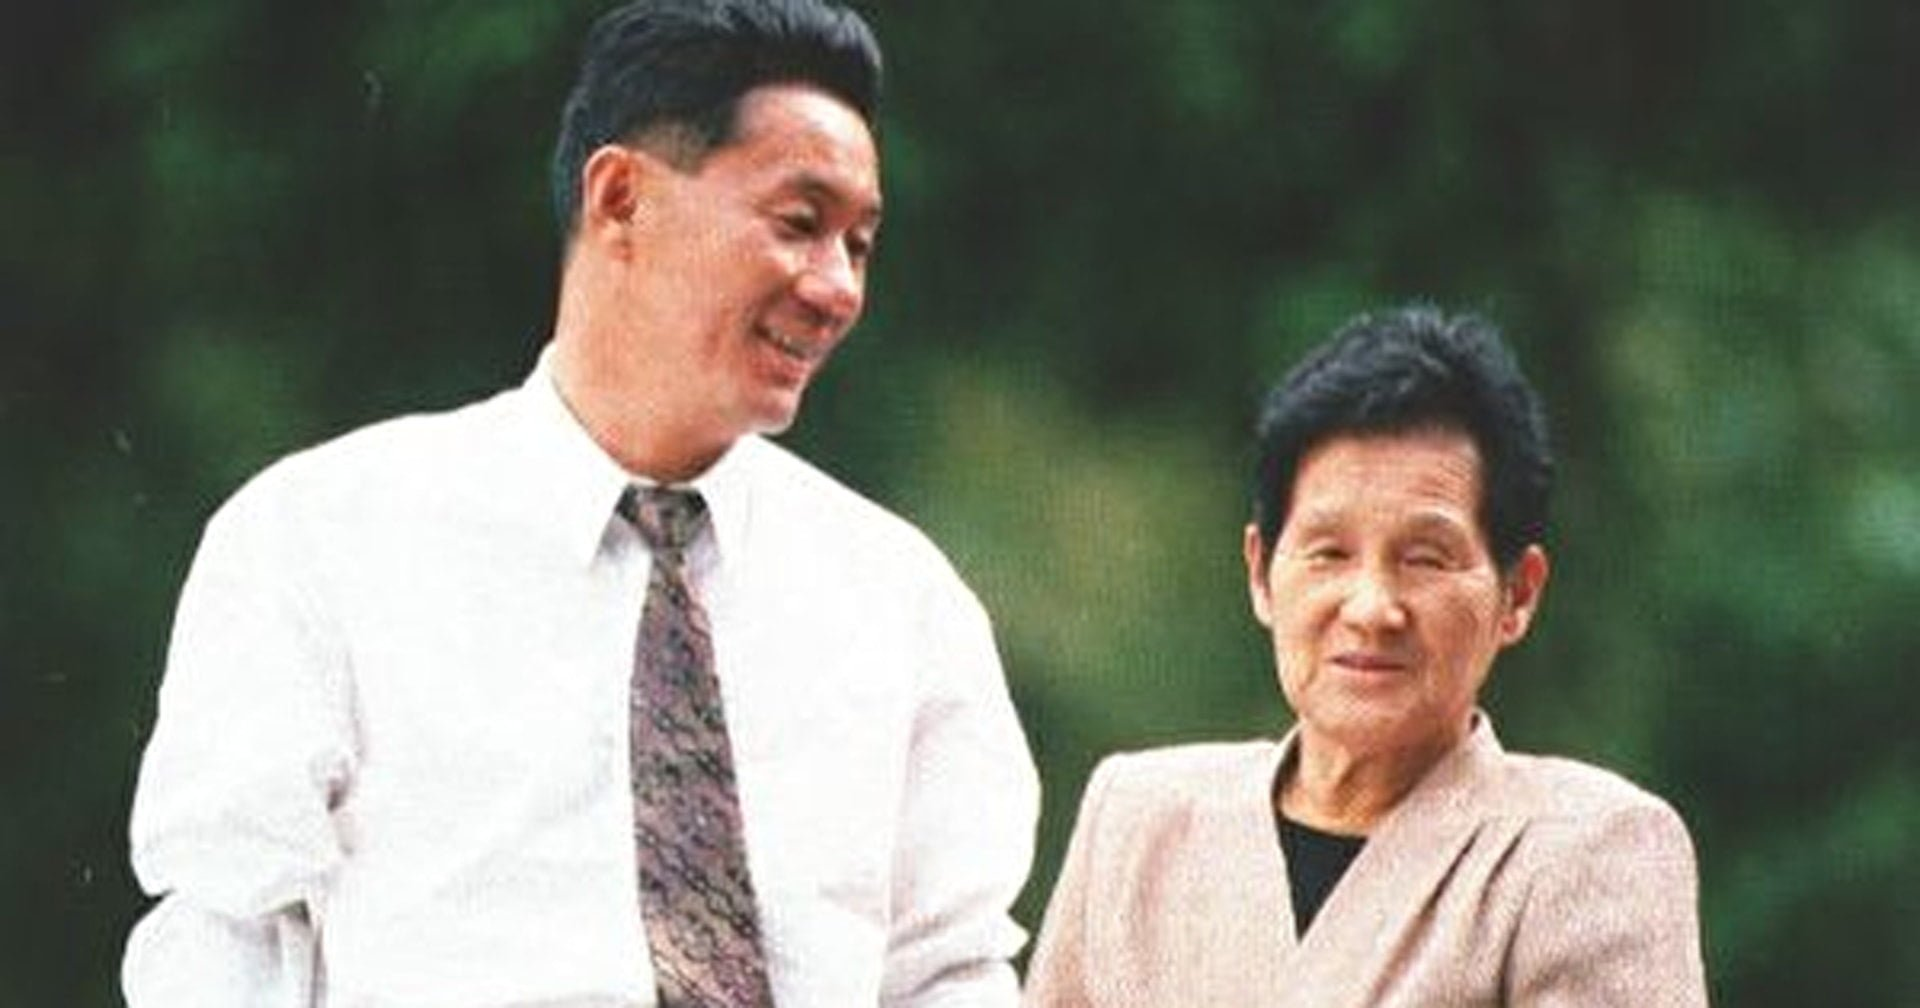 Takeshi Kitano and Mother Smile